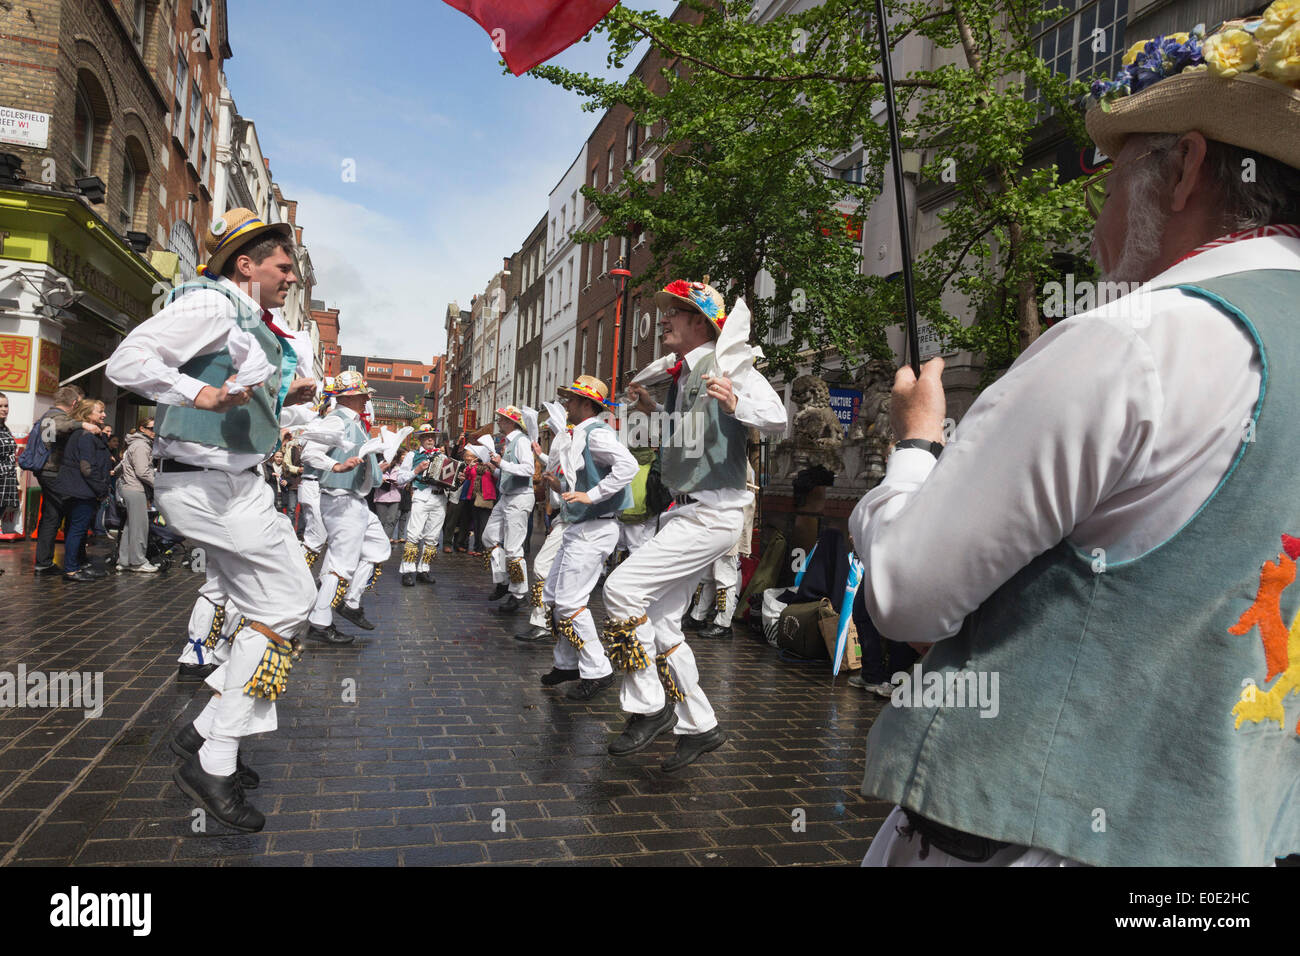 London, UK. 10 May 2014. Pictured: Icknield Way Morris Men from Wantage dancing in Gerrard Street/Chinatown. Morris Dance groups from all over England gathered in London and performed for the public during the Westminster Morris Men Day of Dance. Credit:  Nick Savage/Alamy Live News - Stock Image